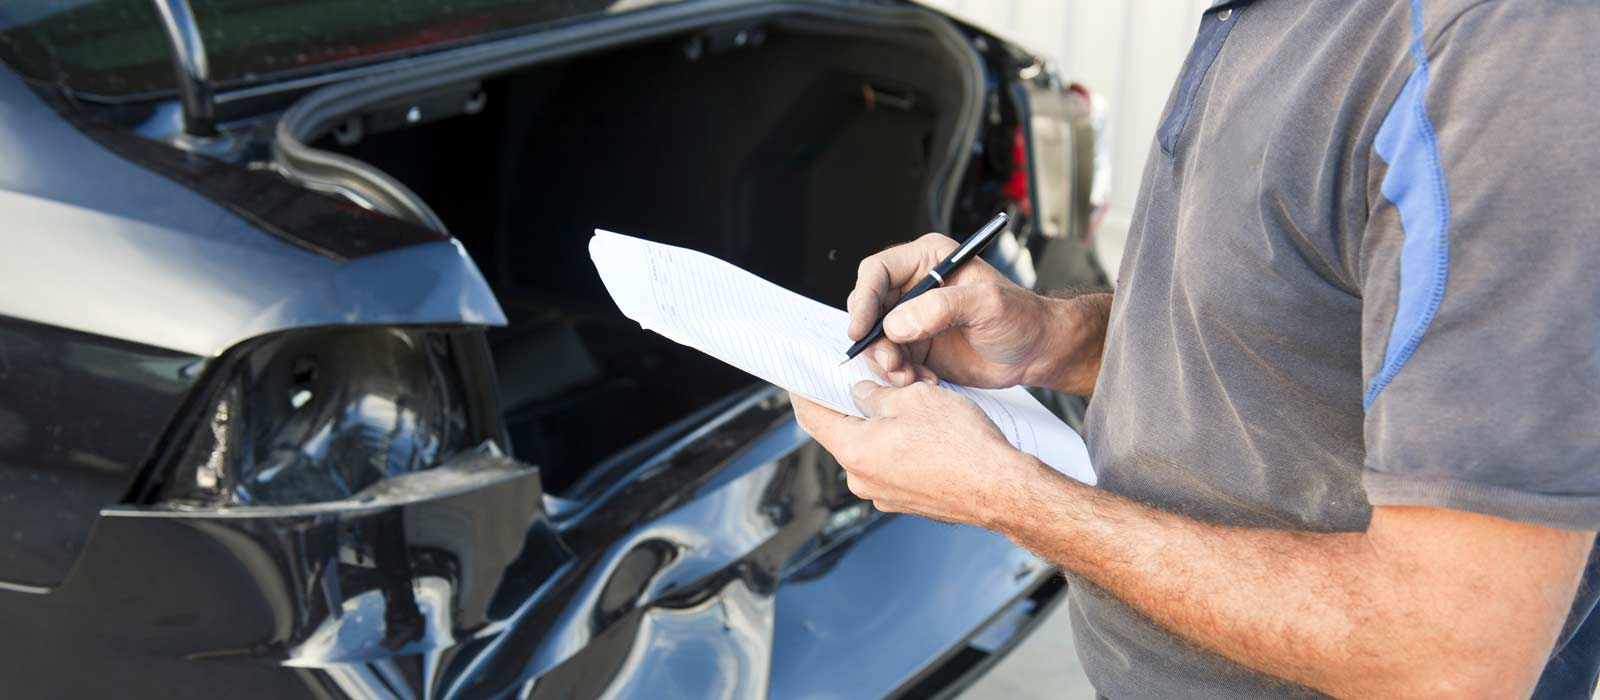 Collision estimators lead customers through the process of getting their vehicle repaired after an accident